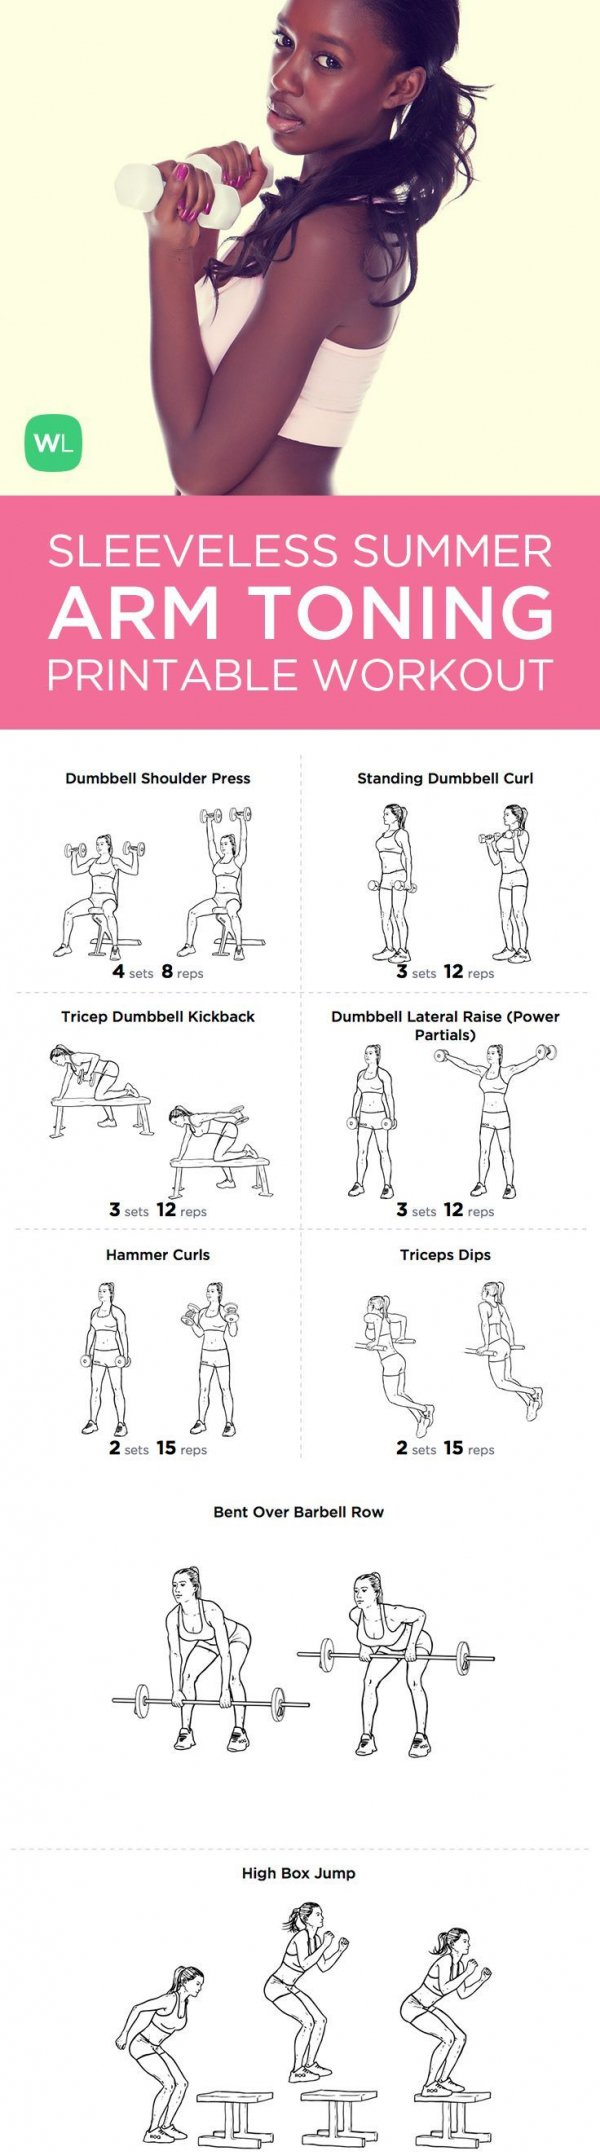 MORE: The 15-Minute Arm Workout